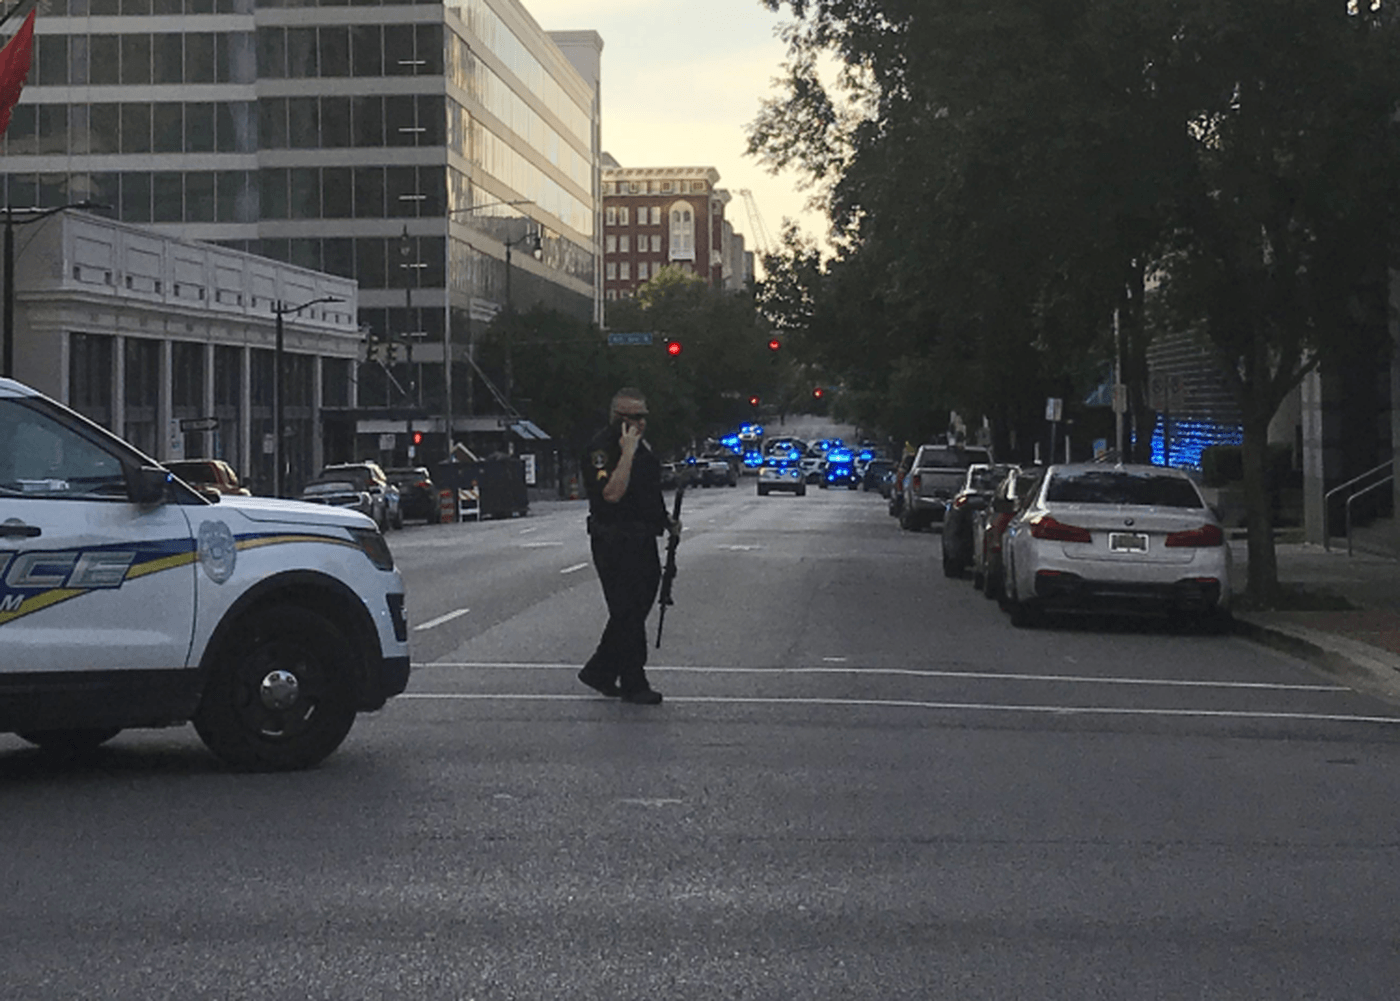 2 Birmingham Police Officers Injured, Robbery Suspect Died In Cross-Fire